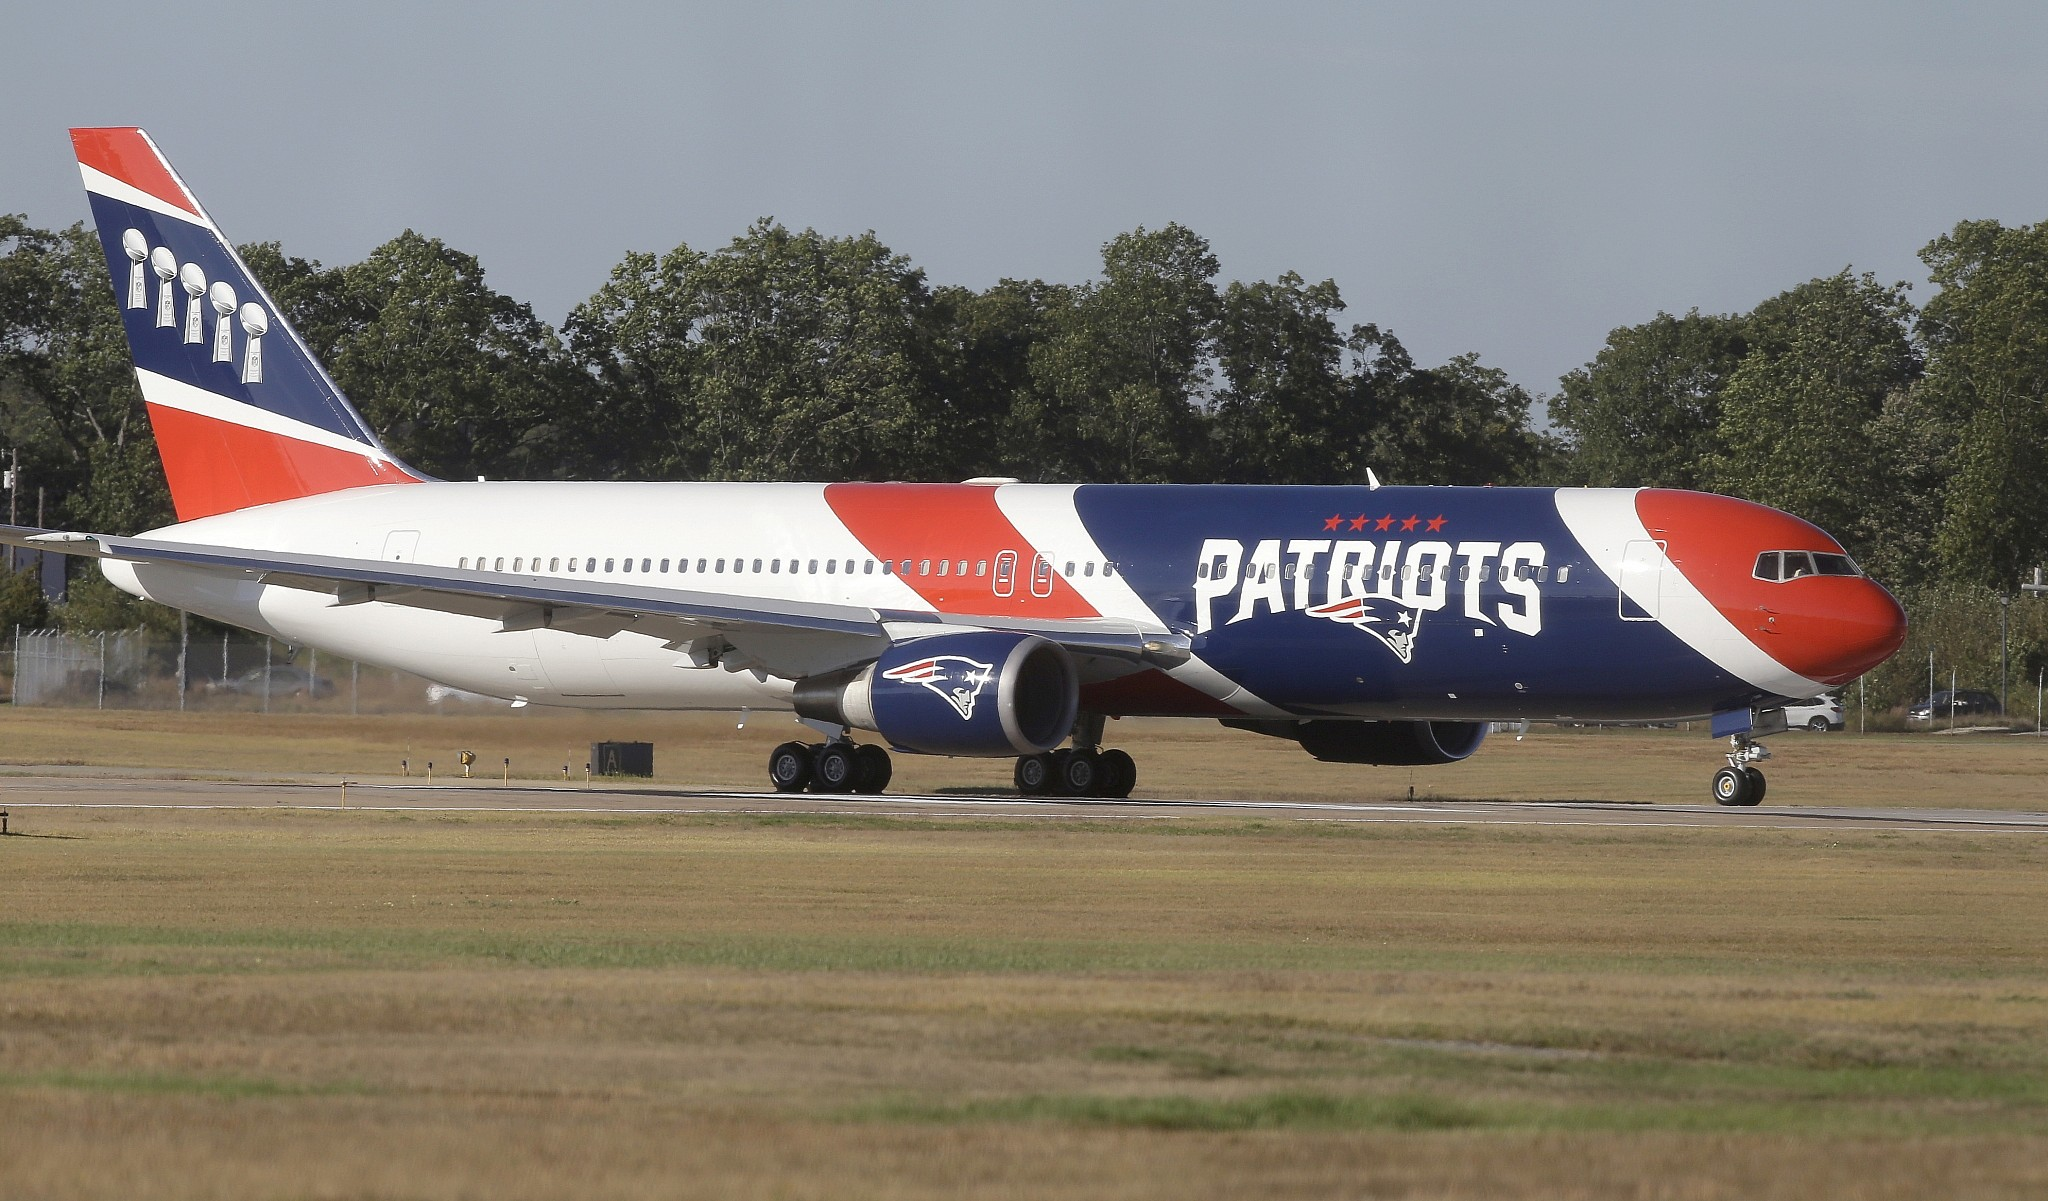 Pats lend plane to Florida shooting victims to attend rally